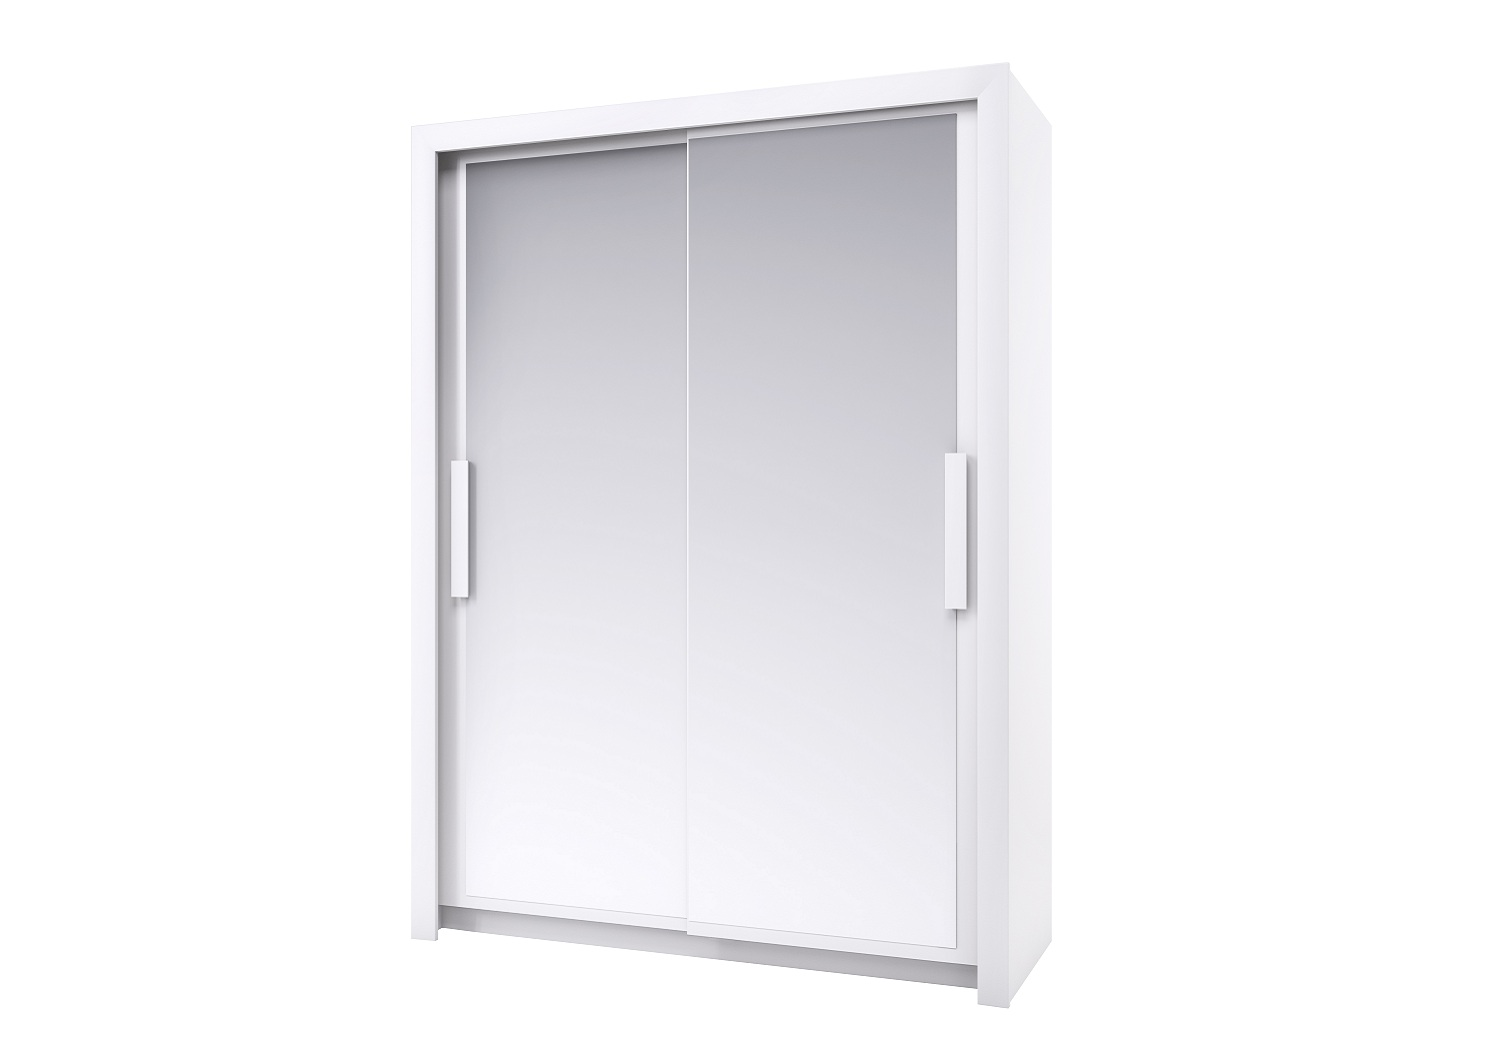 Bilrich Storage Furniture - Perfect Wardrobe 154cm White